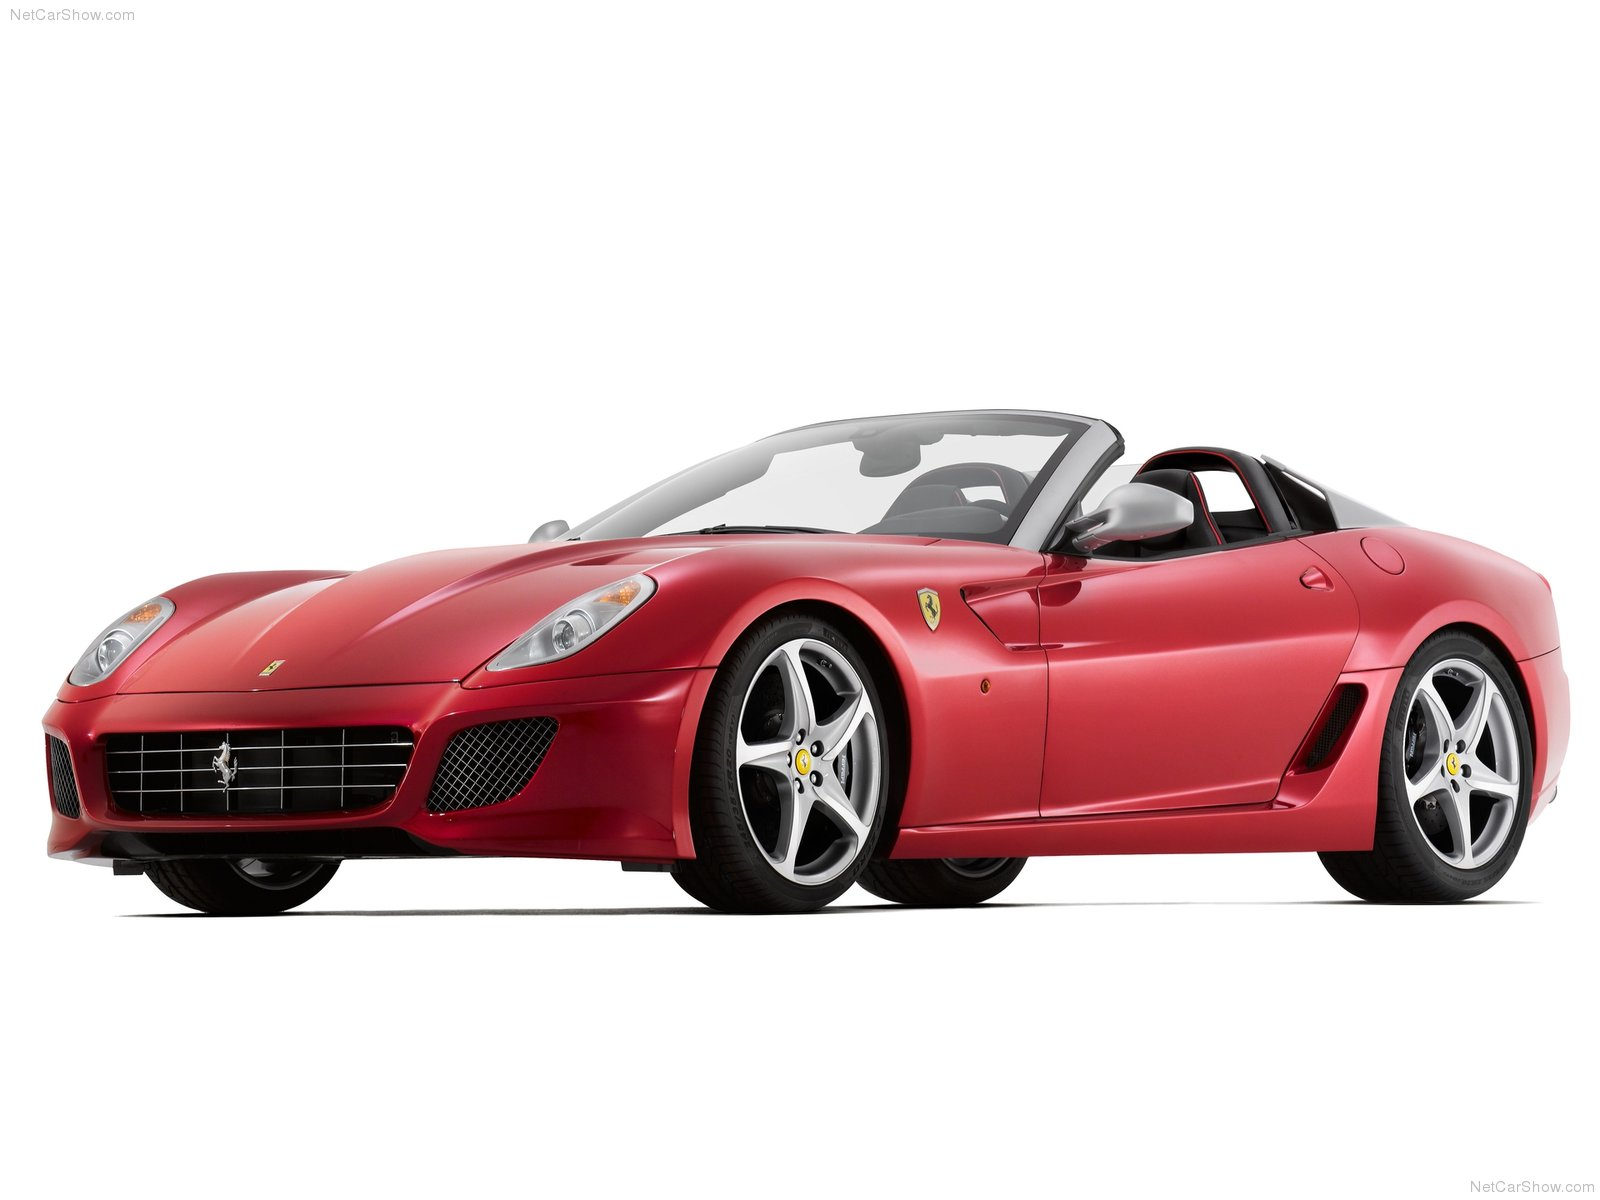 Delicieux Ferrari Is Delighted To Announce The Presentation Of The Ferrari 599 SA  Aperta At The 2010 Paris International Motor Show. This Is A Special Series  Model Of ...